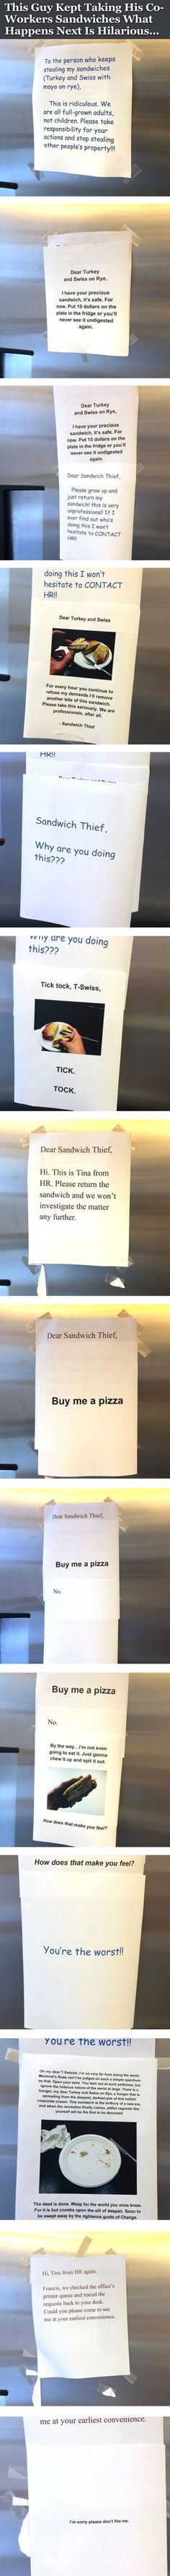 This Guy Kept Taking Co-Workers Sandwiches What Happens Next Is Hilarious... funny jokes story lol funny quote funny quotes funny sayings joke hilarious humor prank stories office pranks funny jokes pranks